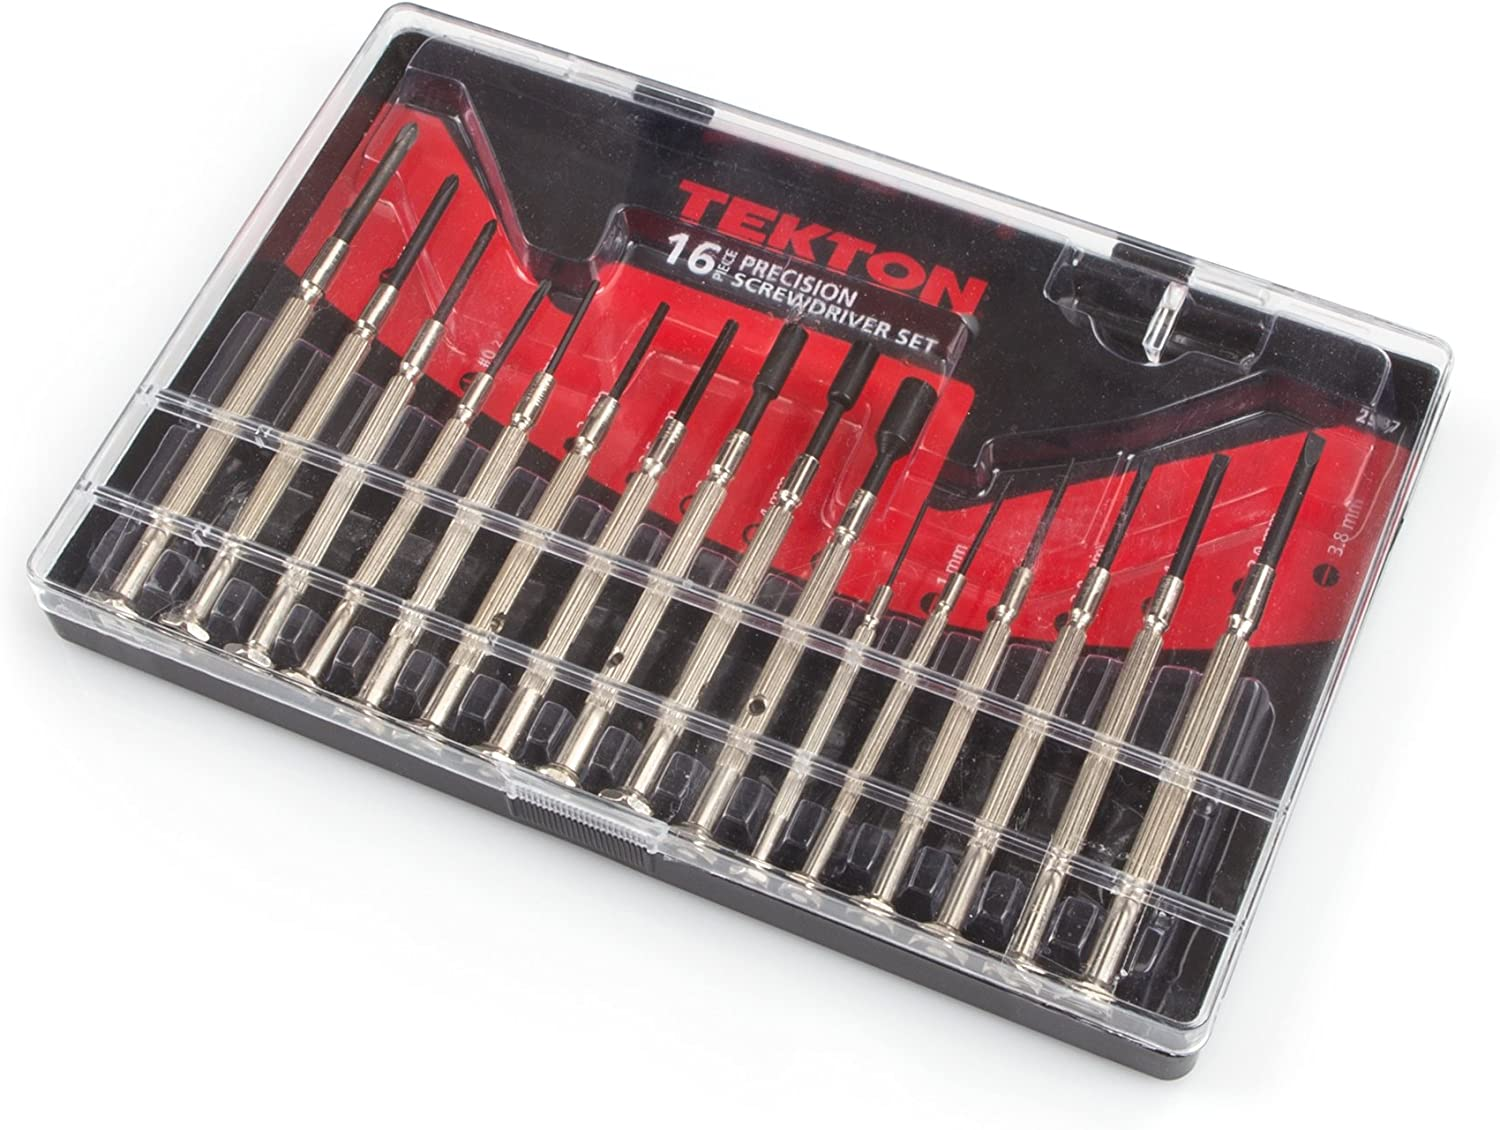 TEKTON 2987 Precision Screwdriver Set